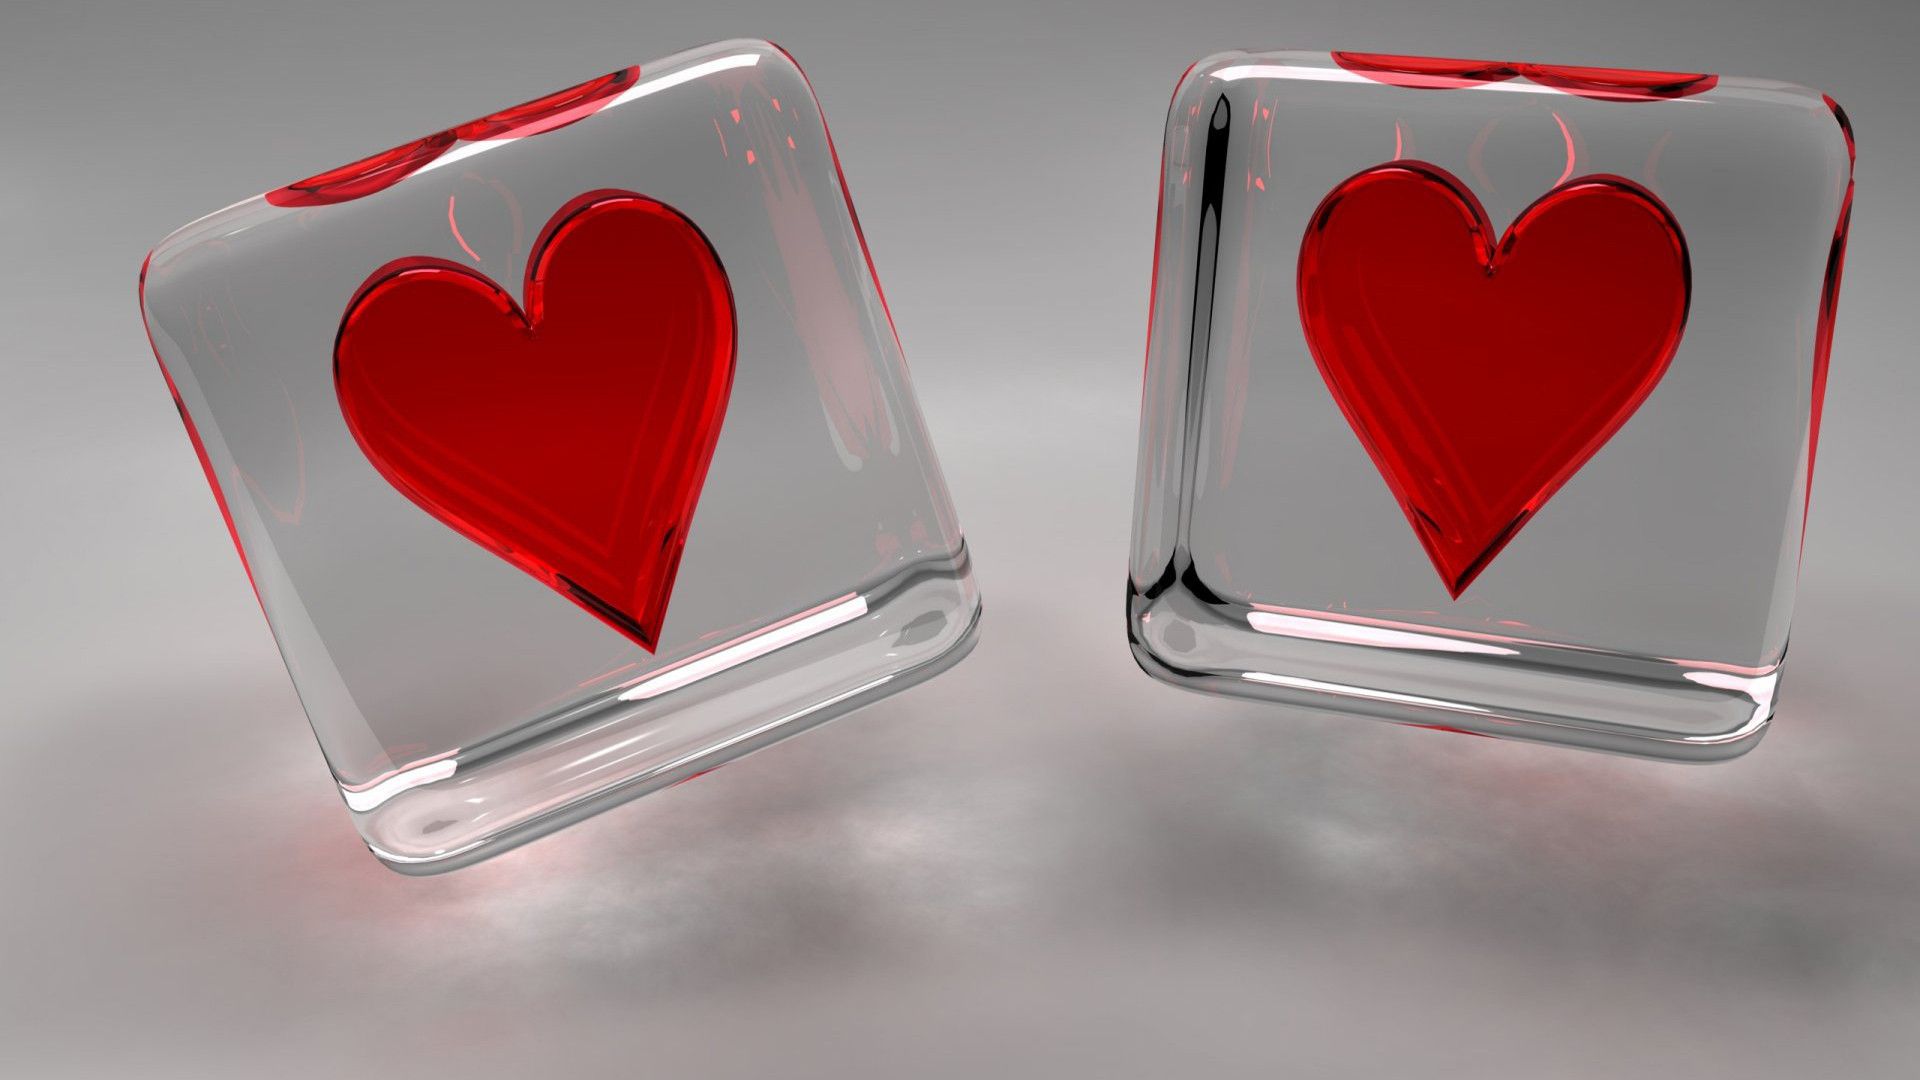 Love Wallpapers Backgrounds 64 Background Pictures